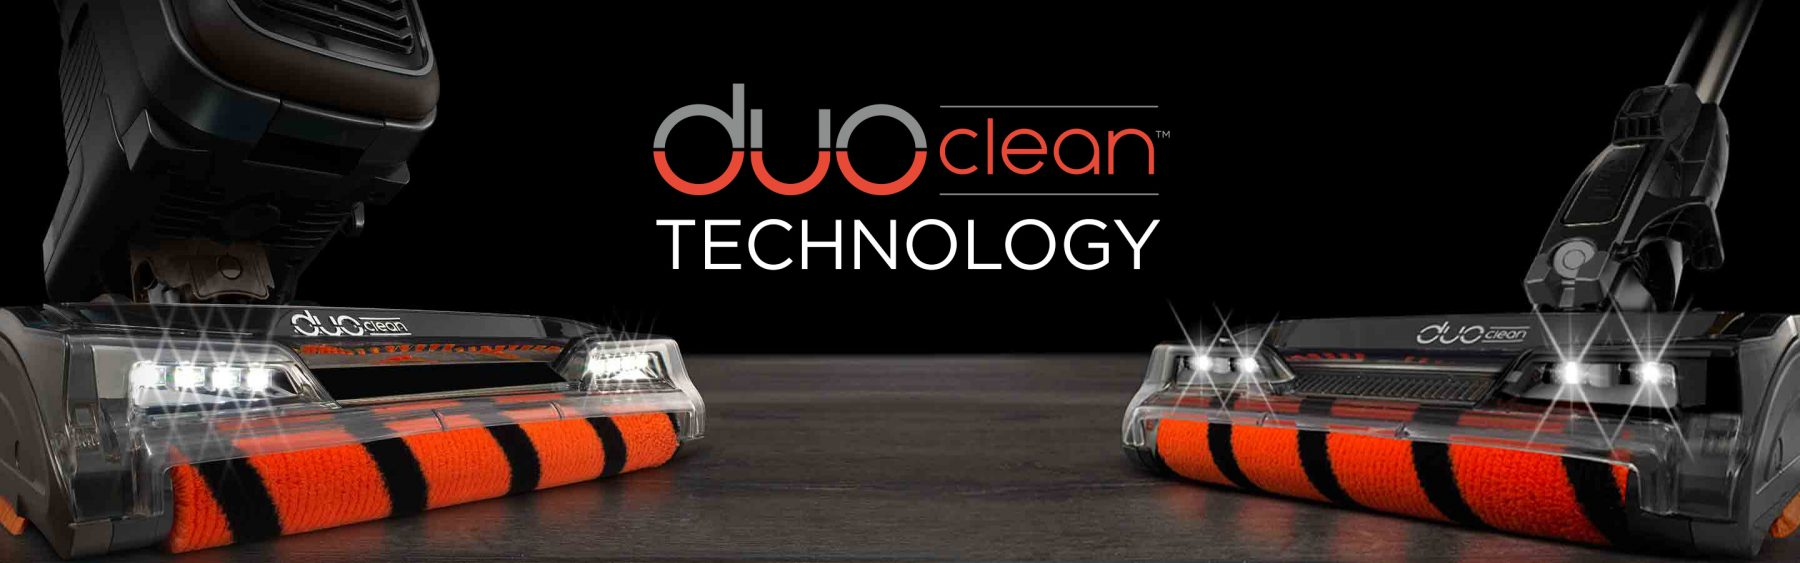 Shark DuoClean Vacuum Cleaner Technology